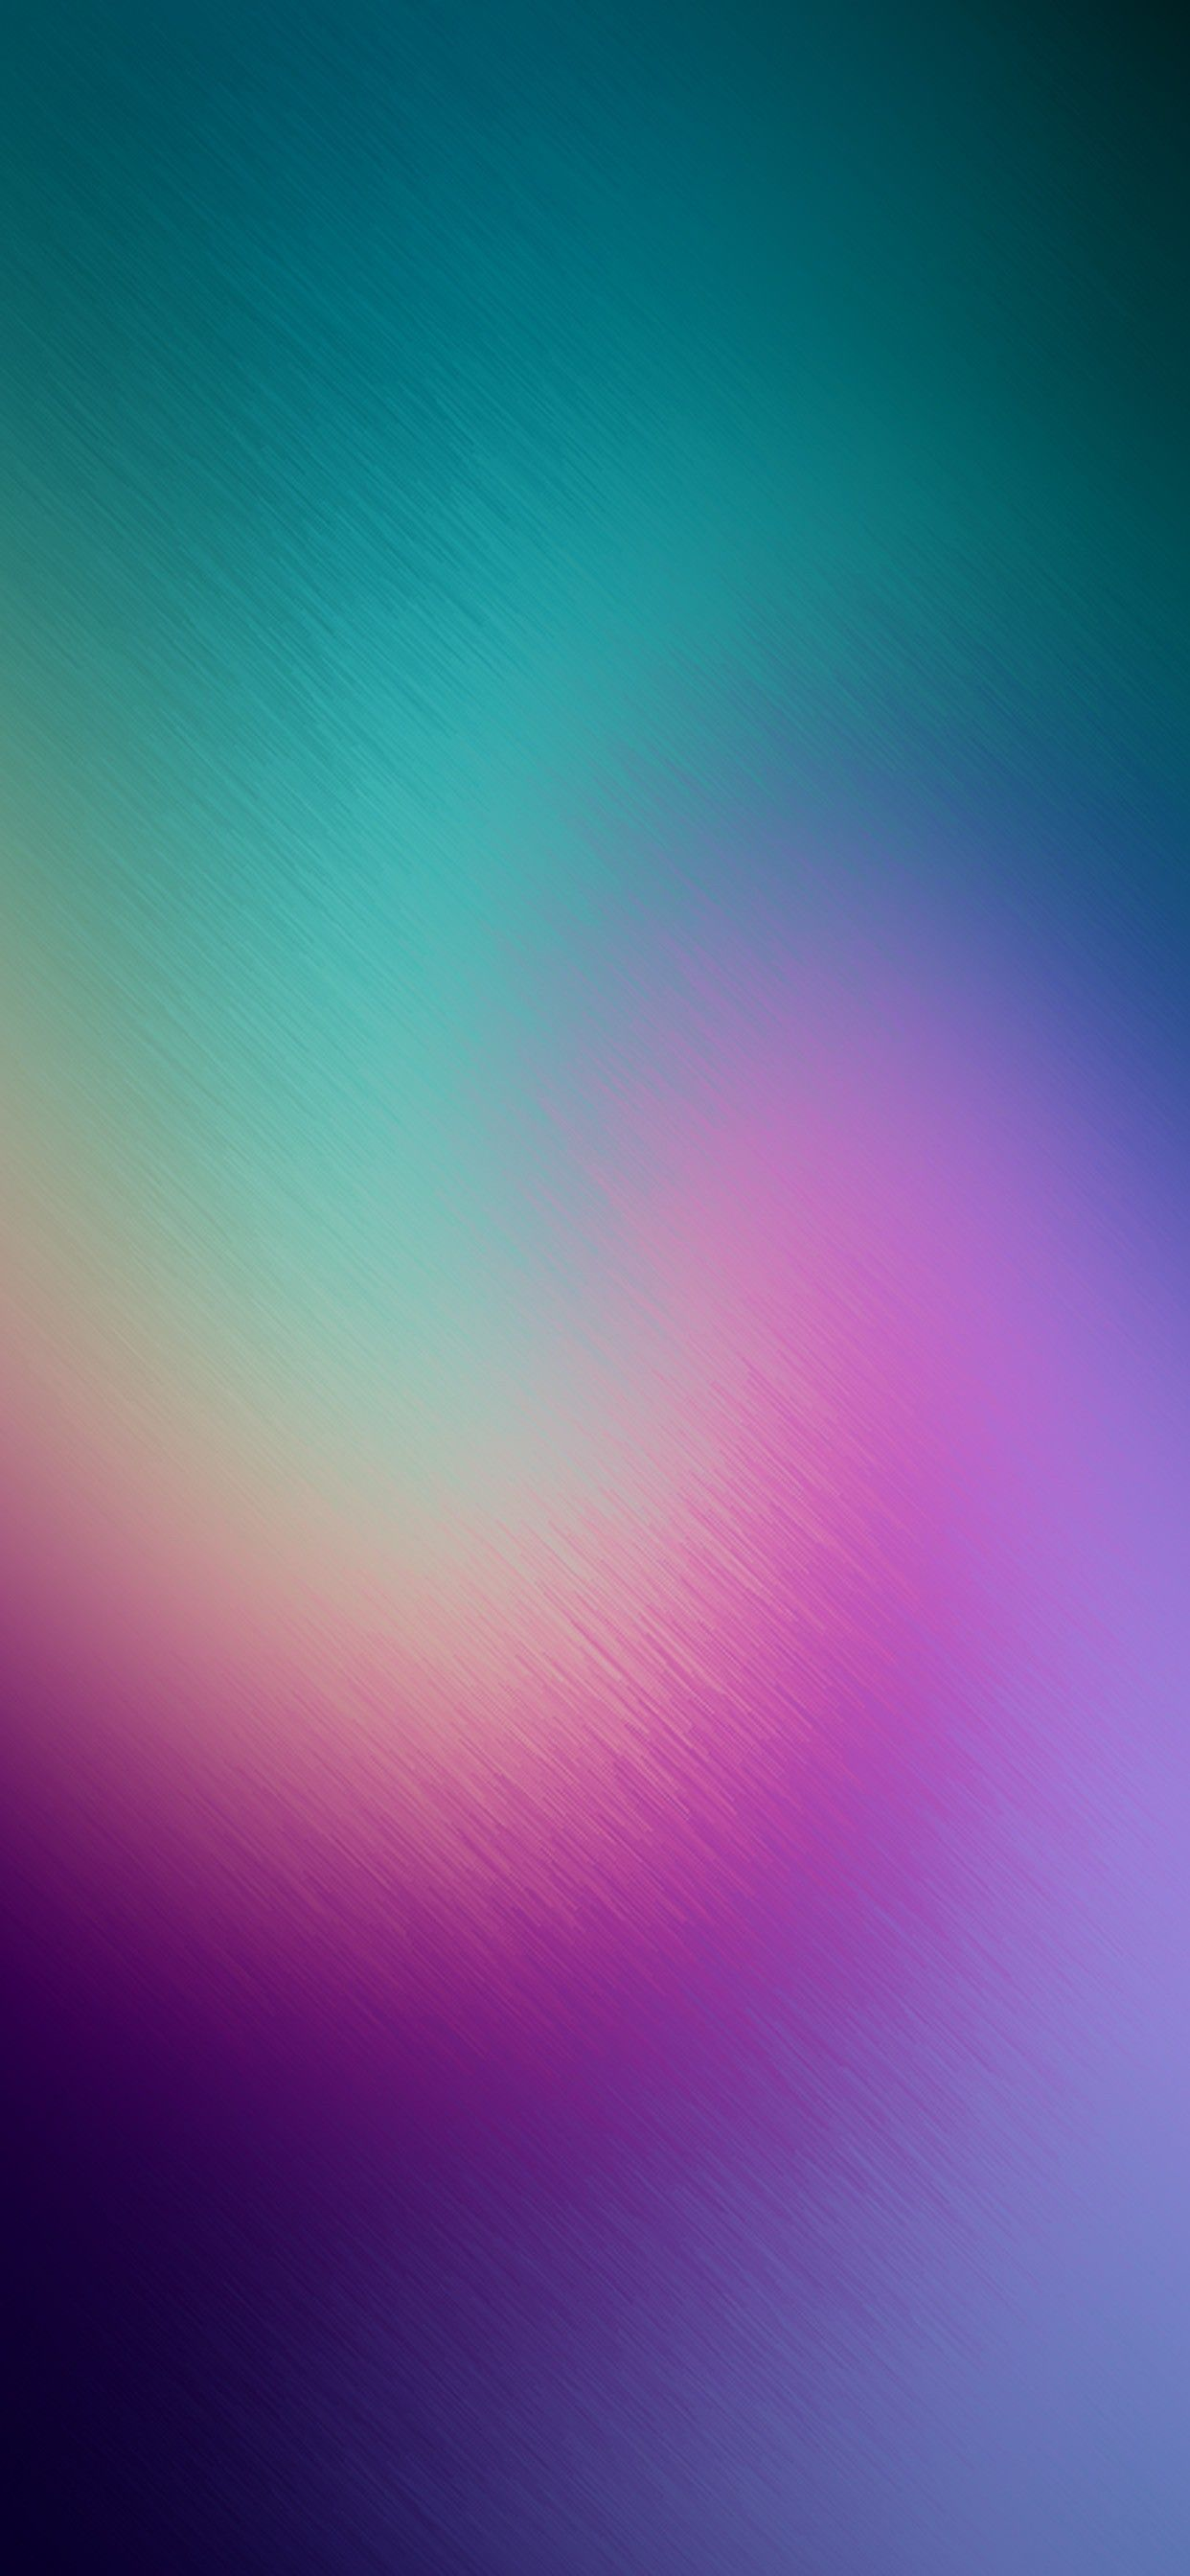 Lg G8x Thinq Abstract Mobile Hd Wallpapers 1242x2688 Hd Wallpaper Abstract Colorful Wallpaper